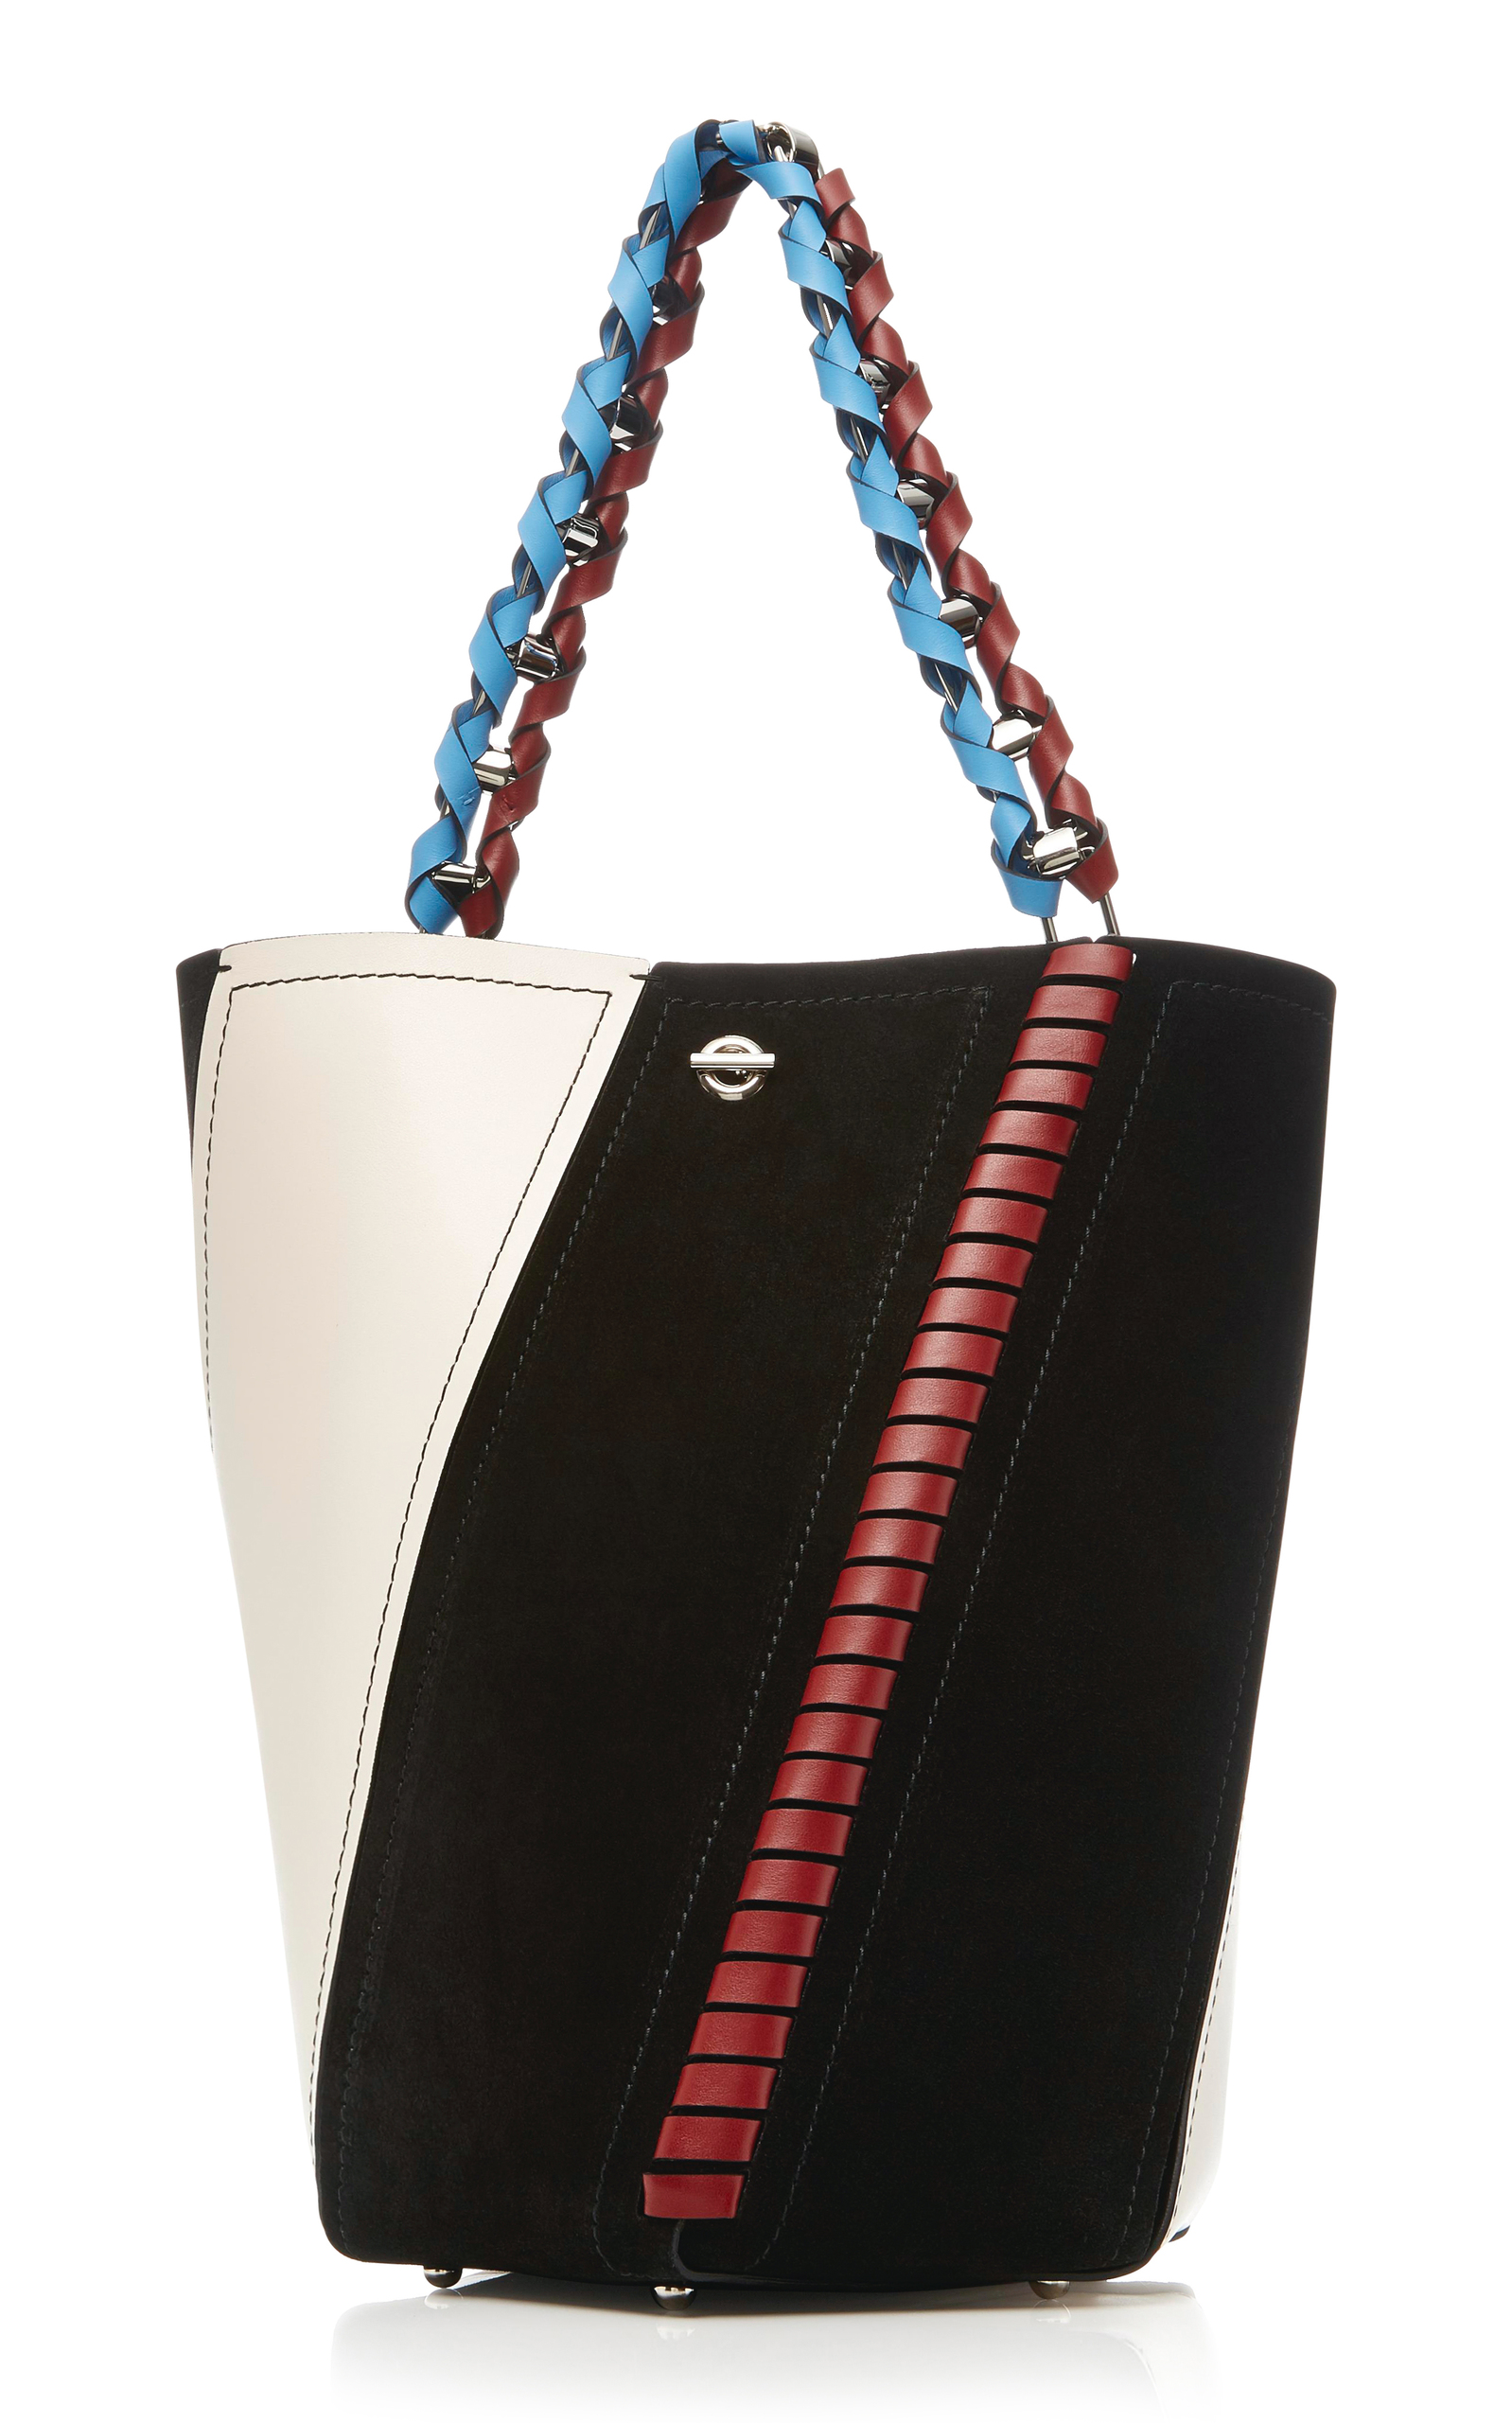 This Proenza Schouler bag (I told you...)is a great option for the busy woman on the go. A great size and incredibly versatile with touches of blue and red on a black and ivory base. The different finishes bring extra interest and ties the bag into almost every outfit you can dream up!